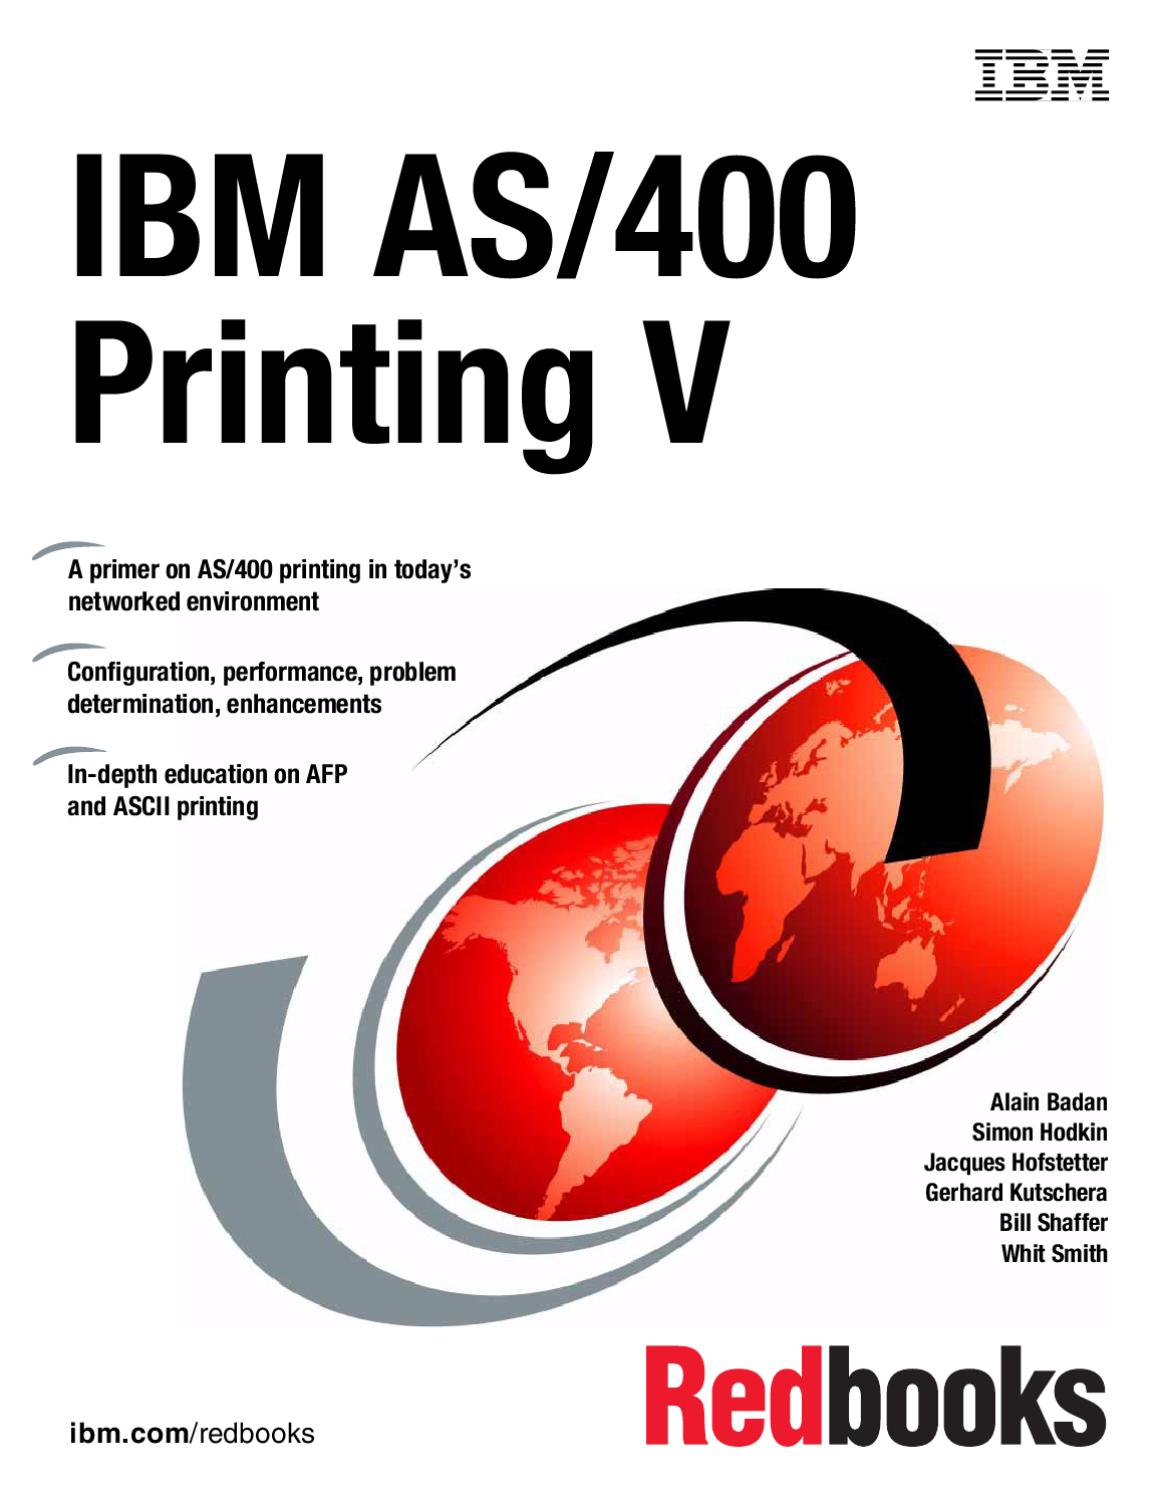 Ibm Lotus Viewer Elegant Redbook as 400 by Gustavo González issuu